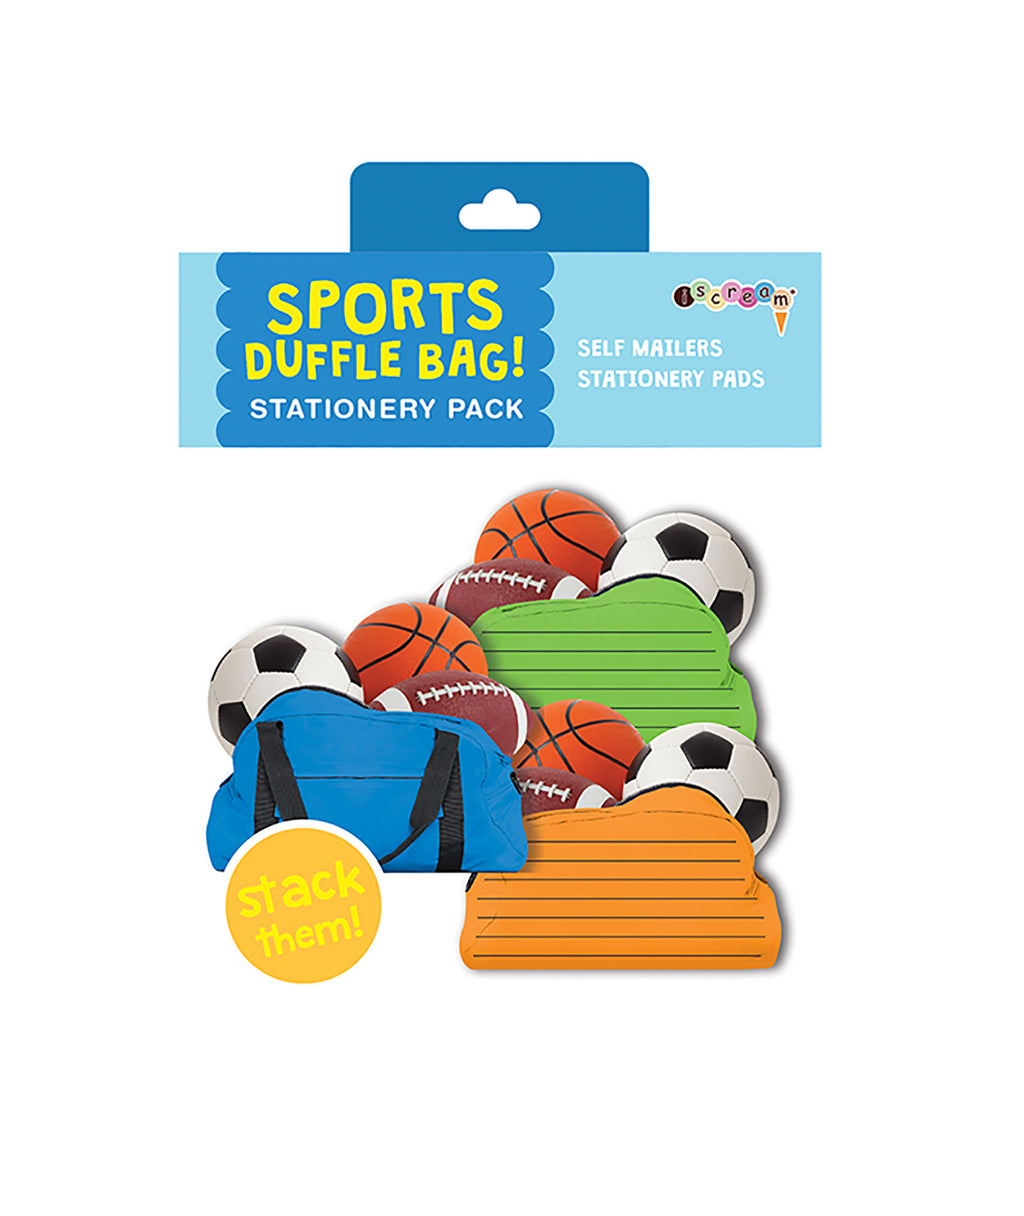 iScream Sports Stationary Set